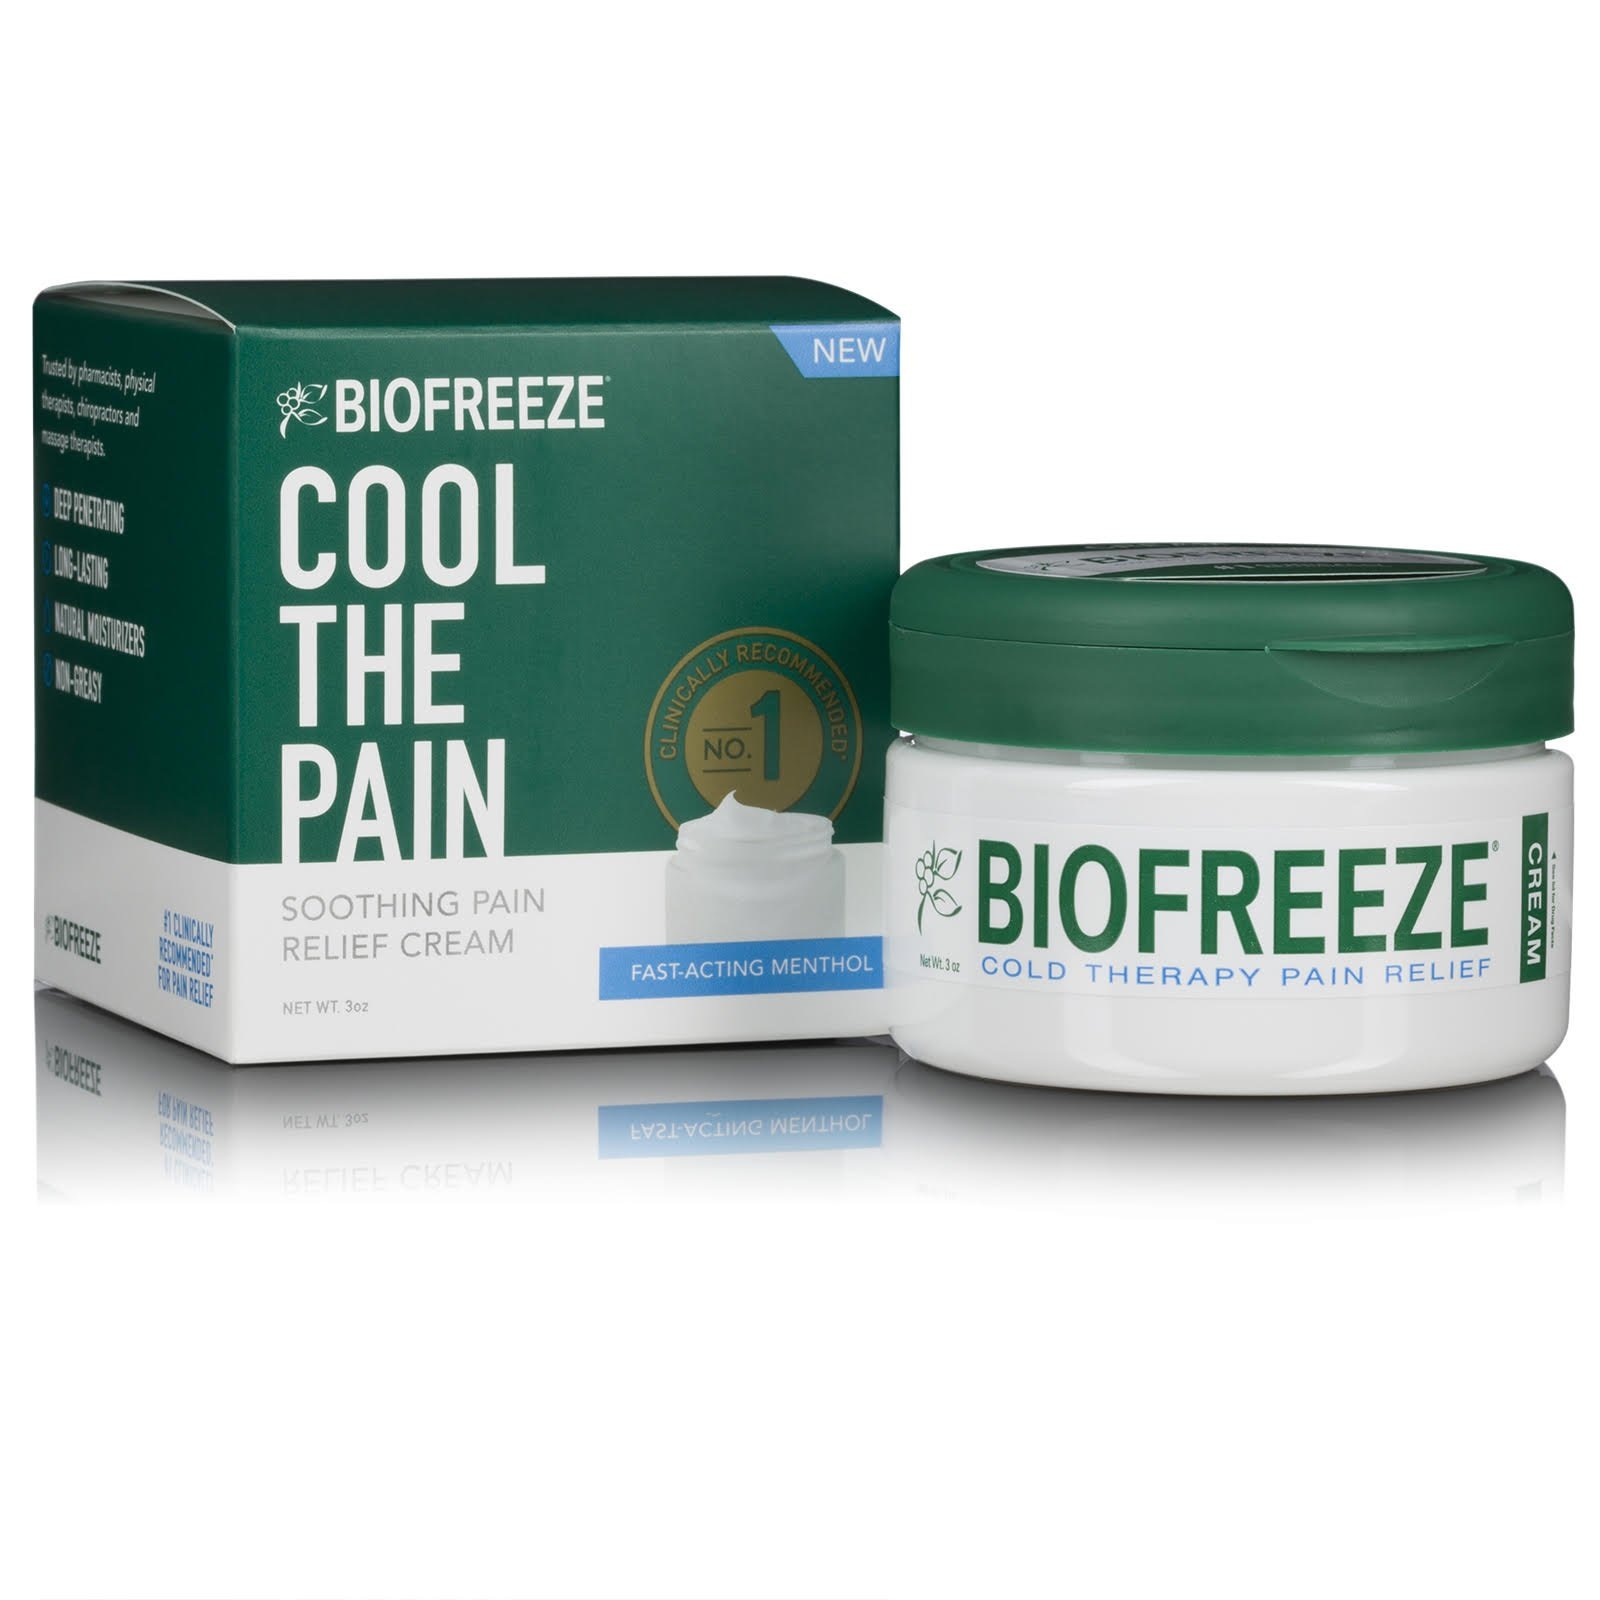 Biofreeze Cream, New Pain Relief Cream from The #1 Clinically Recommended Brand, Advanced Topical Analgesic Pain Reliever, Sore Muscles & Joints, 3 oz. Jar